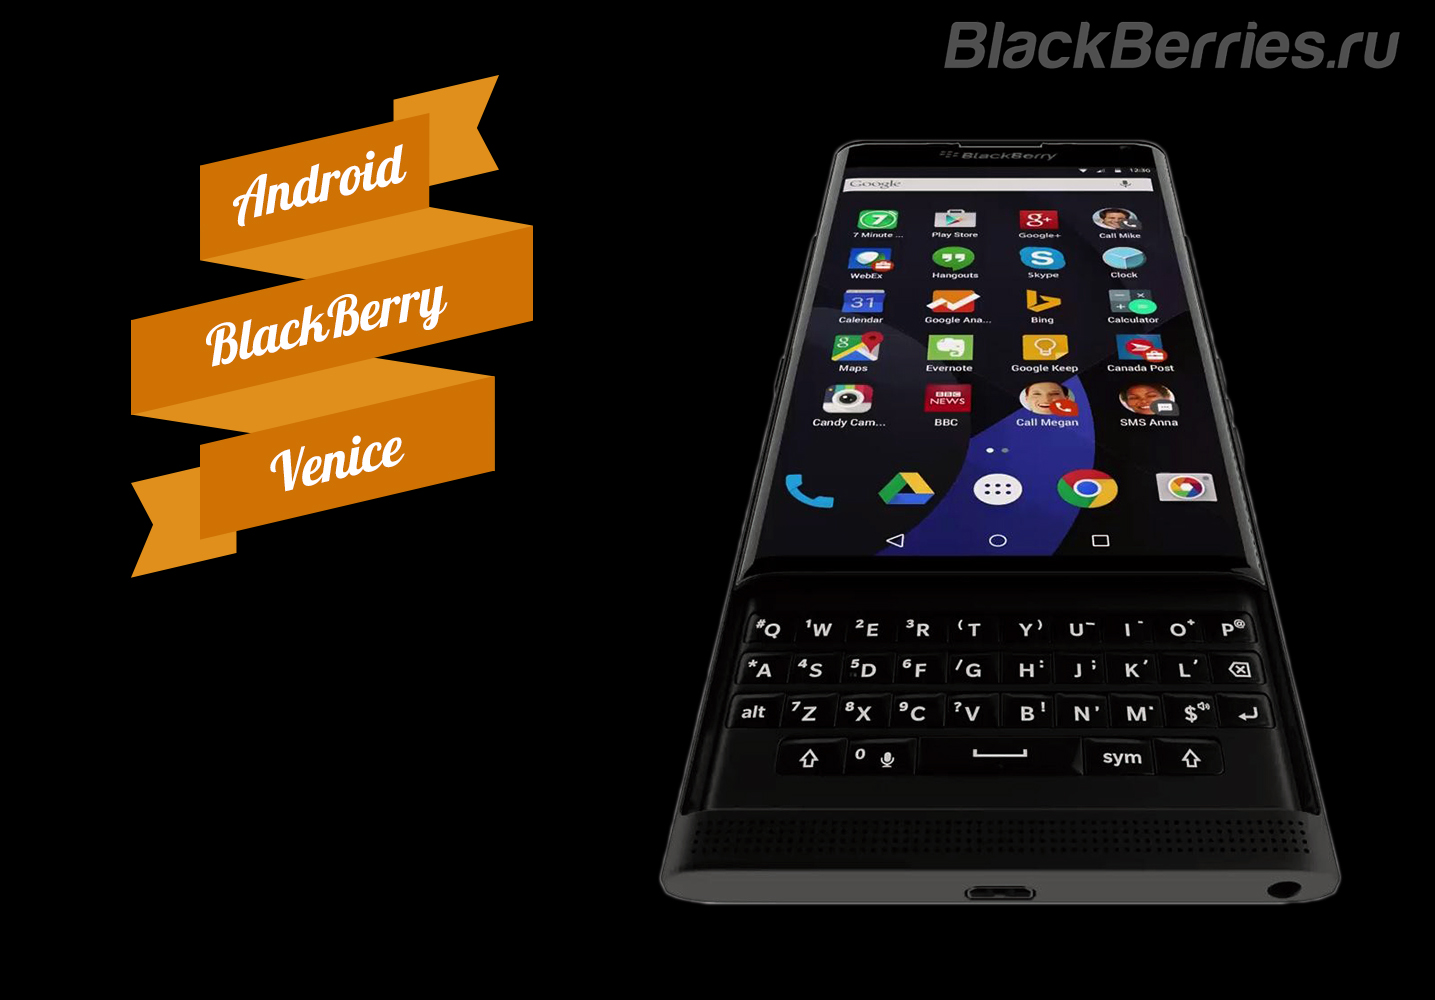 BlackBerry-Avenger